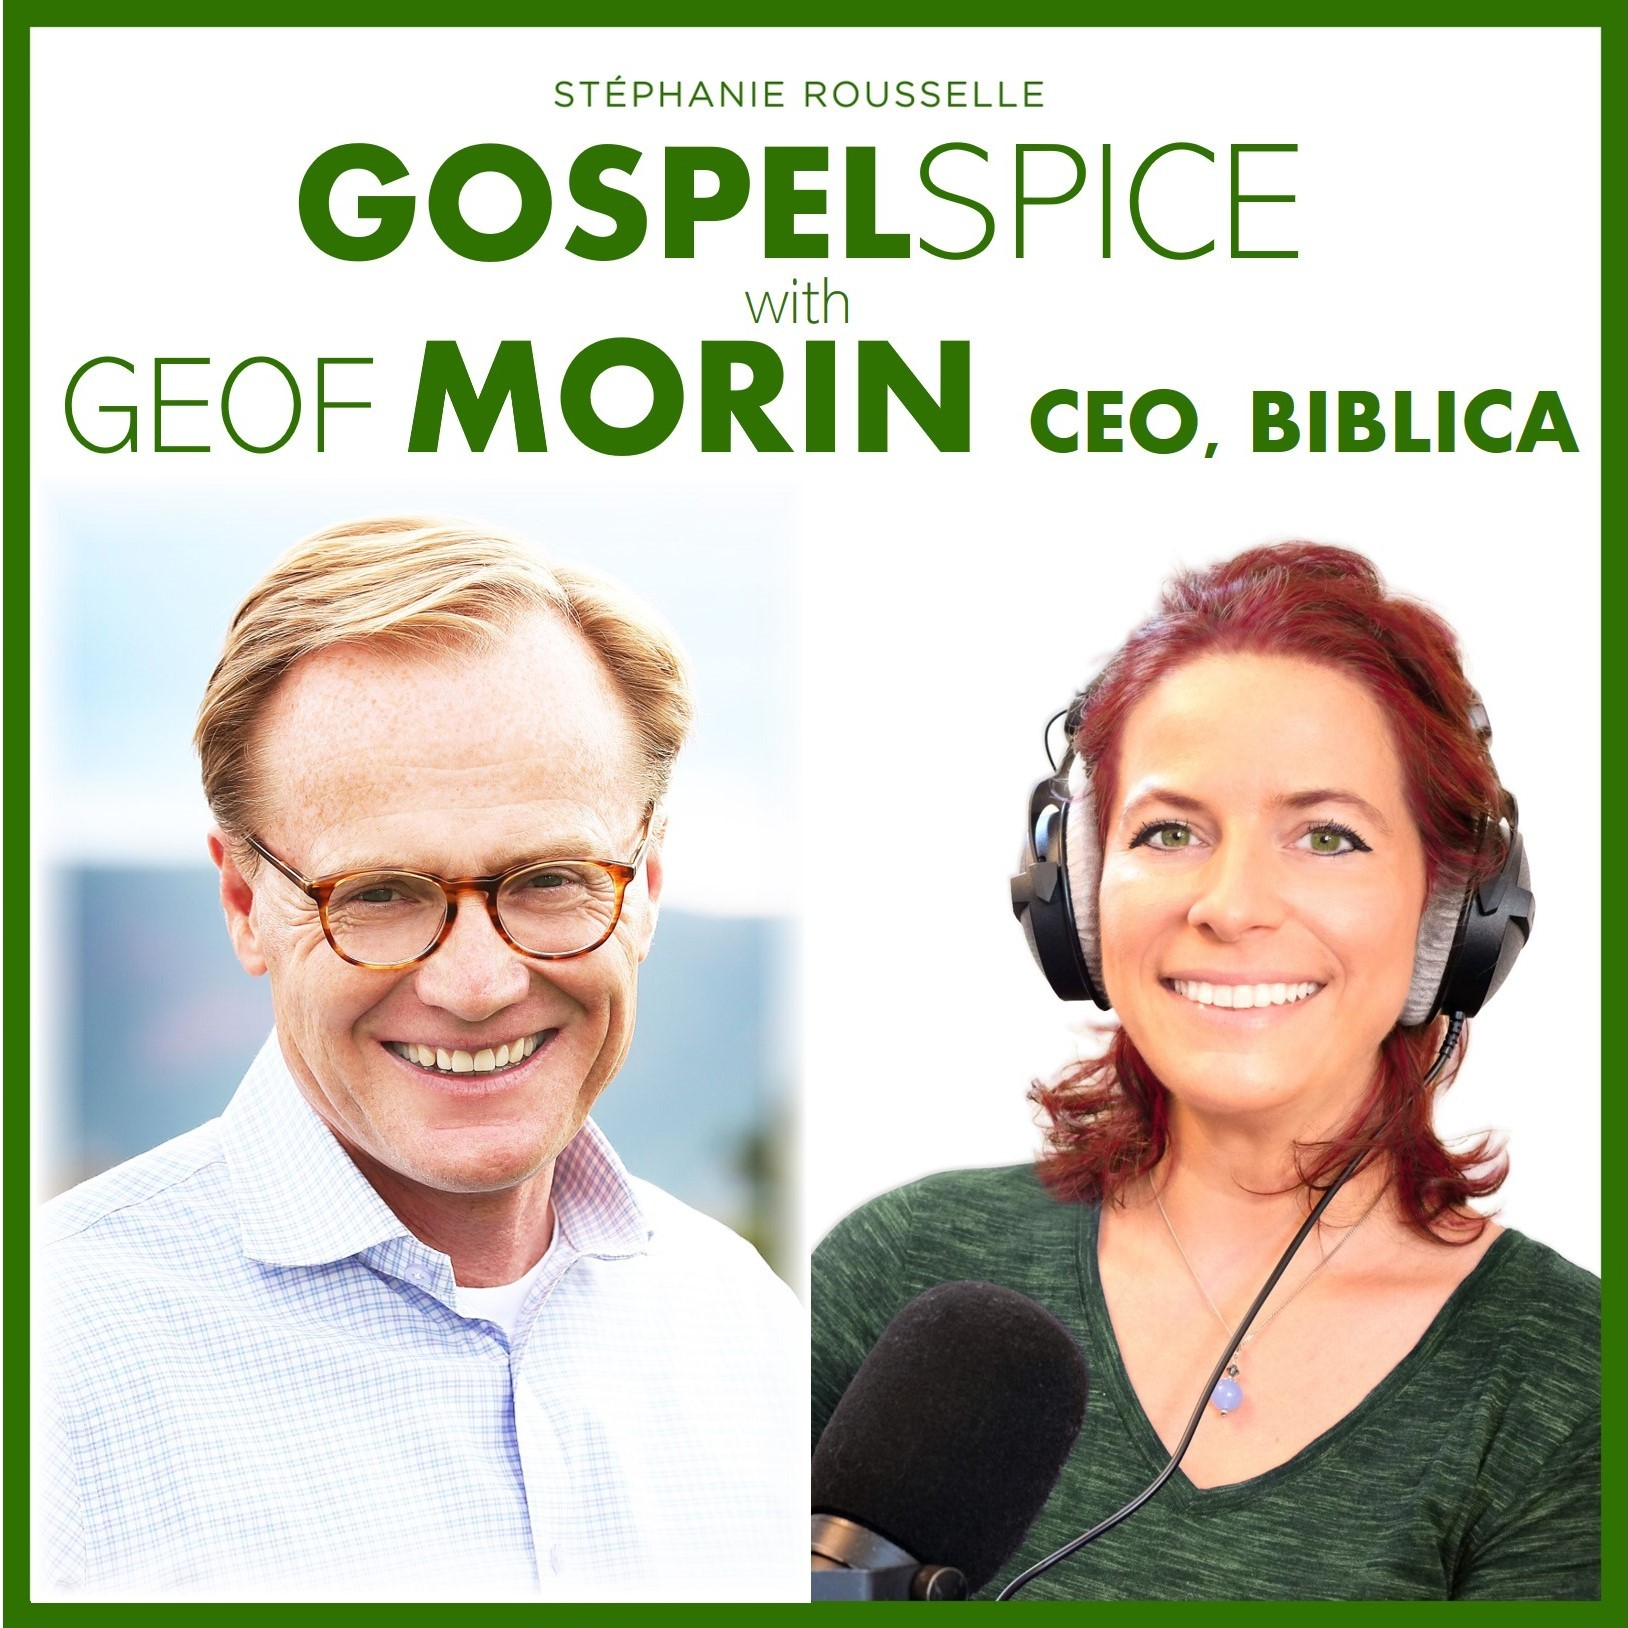 Do you know the power of what's in your hands? -- with Geof Morin, CEO, Biblica